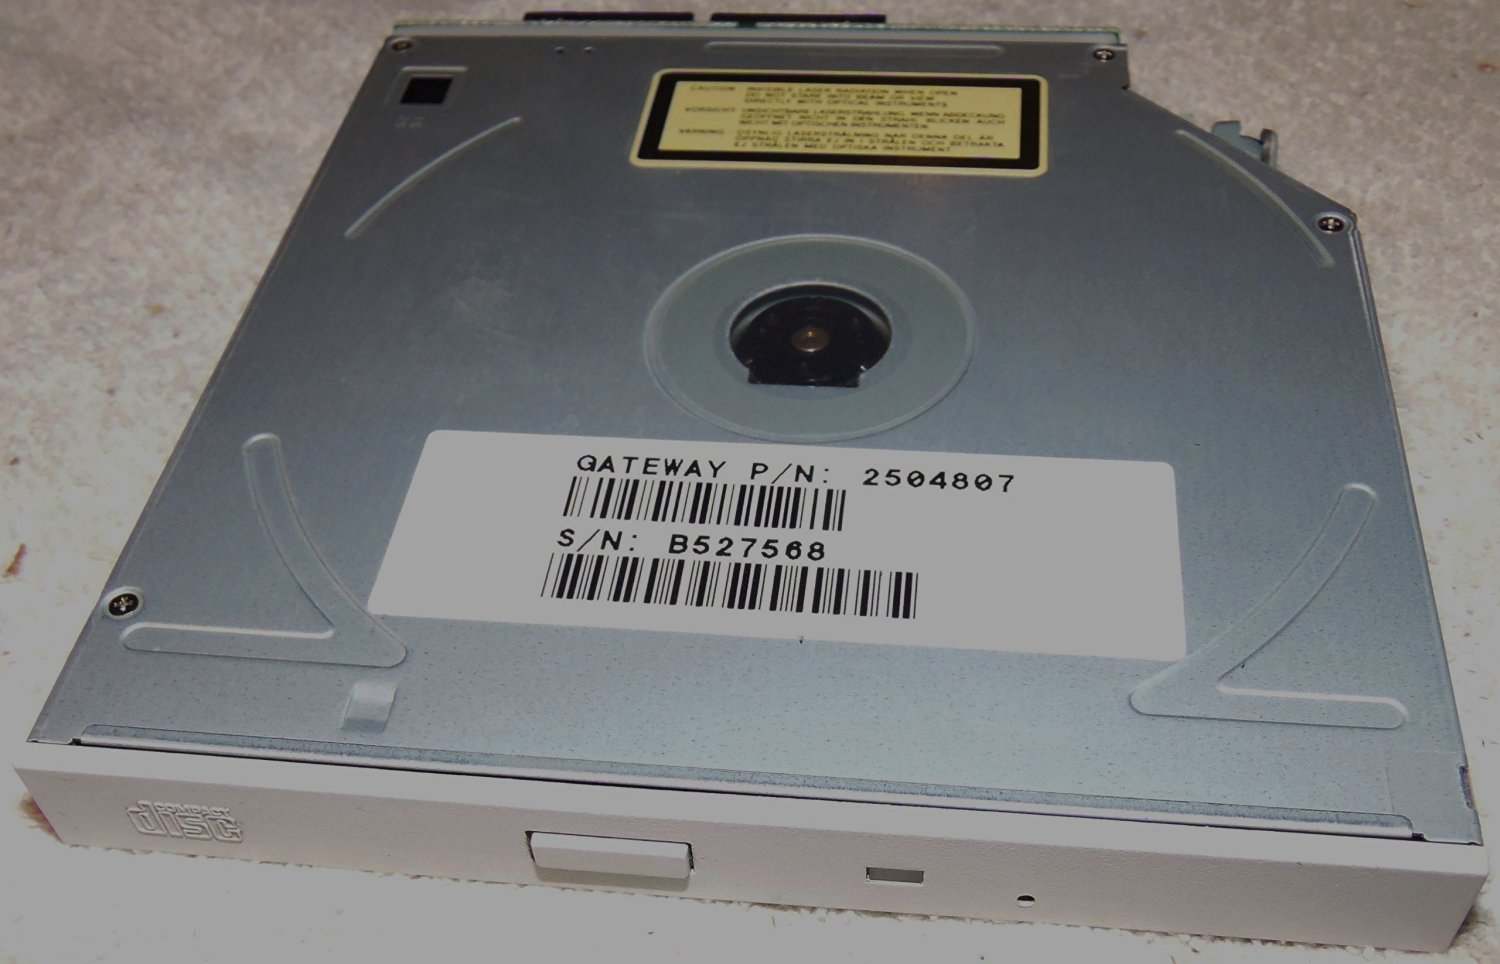 DELL XPS 200 TEAC CD-224E-N WINDOWS 7 64BIT DRIVER